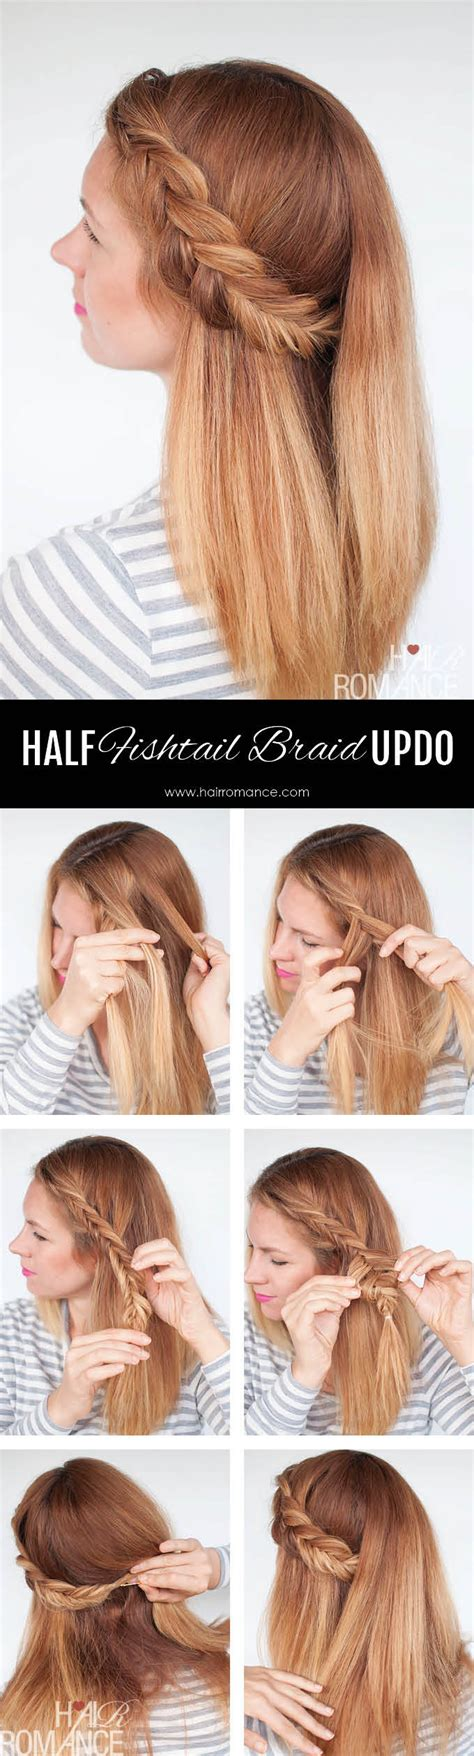 steps to show how to make fish tail favload reverse fishtail braid tutorial two ways